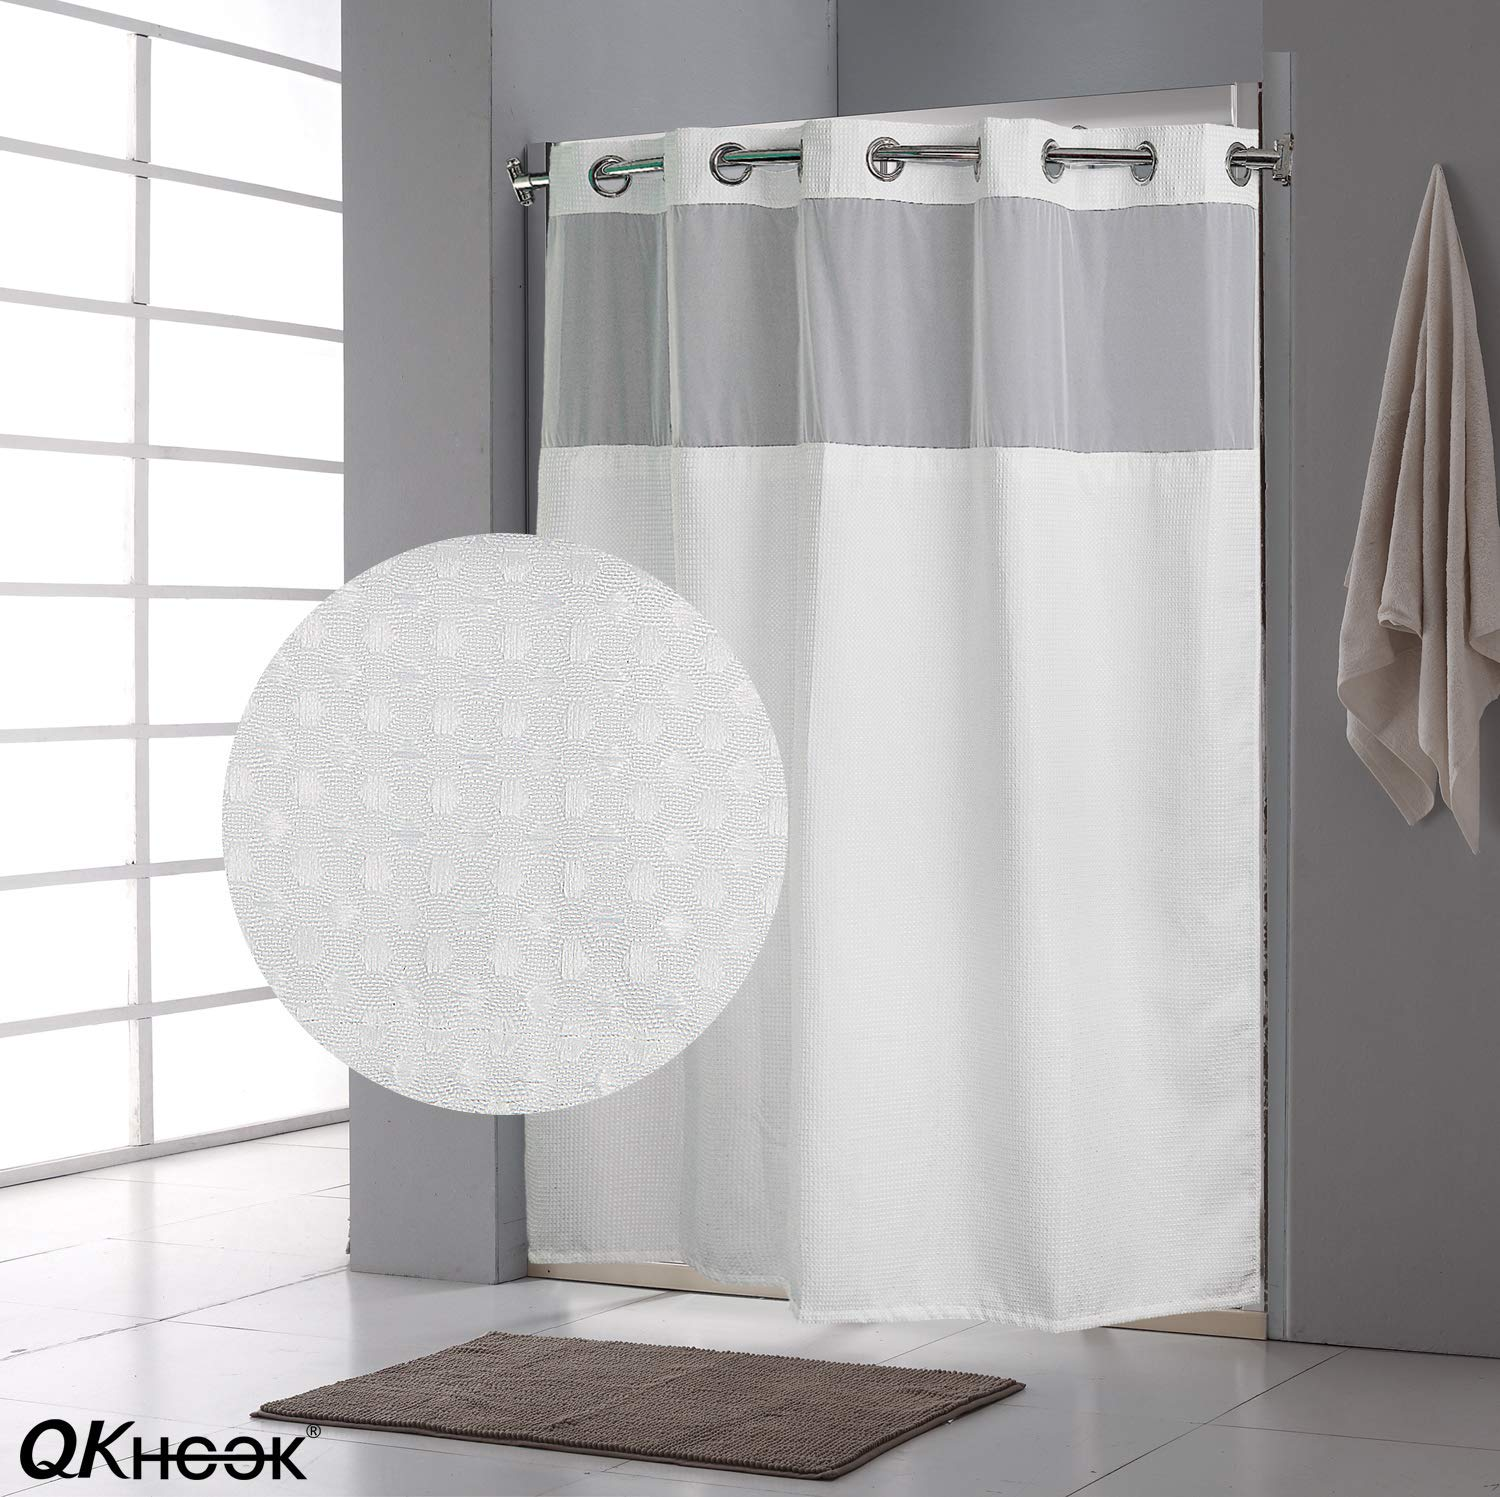 QKHook Hookless Shower Curtain with Snap in Liner 1 Pack 71x74 Inches Waffle Pattern Fabric Water-Repellent